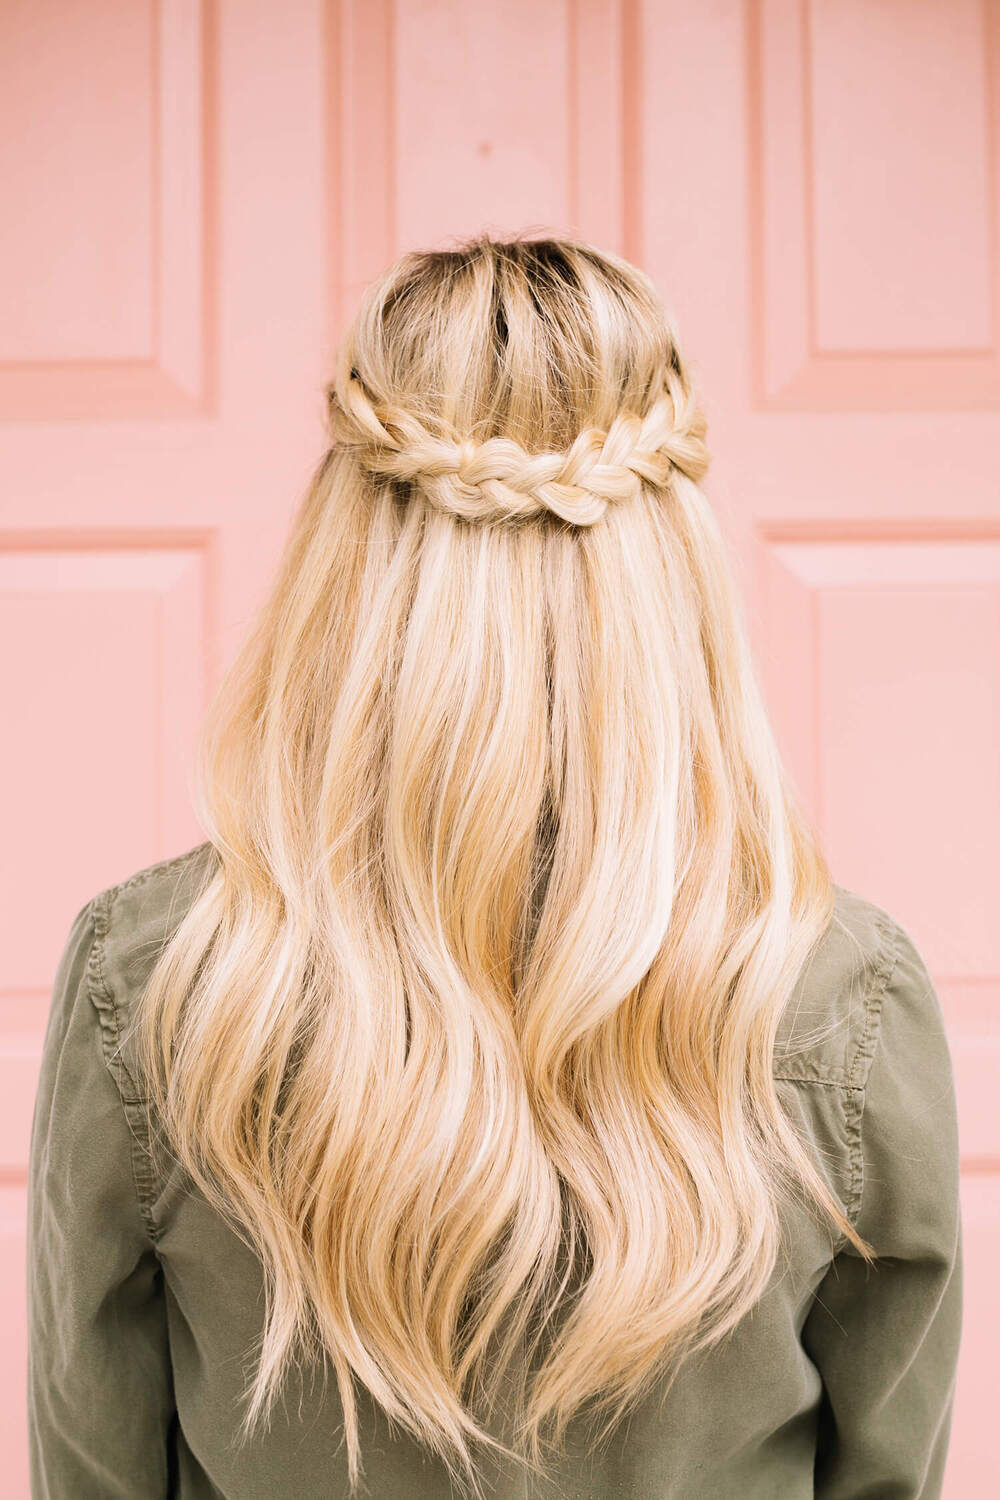 Skip The Salon And Try One Of These DIY Hairstyles For Formal Events - Wheretoget